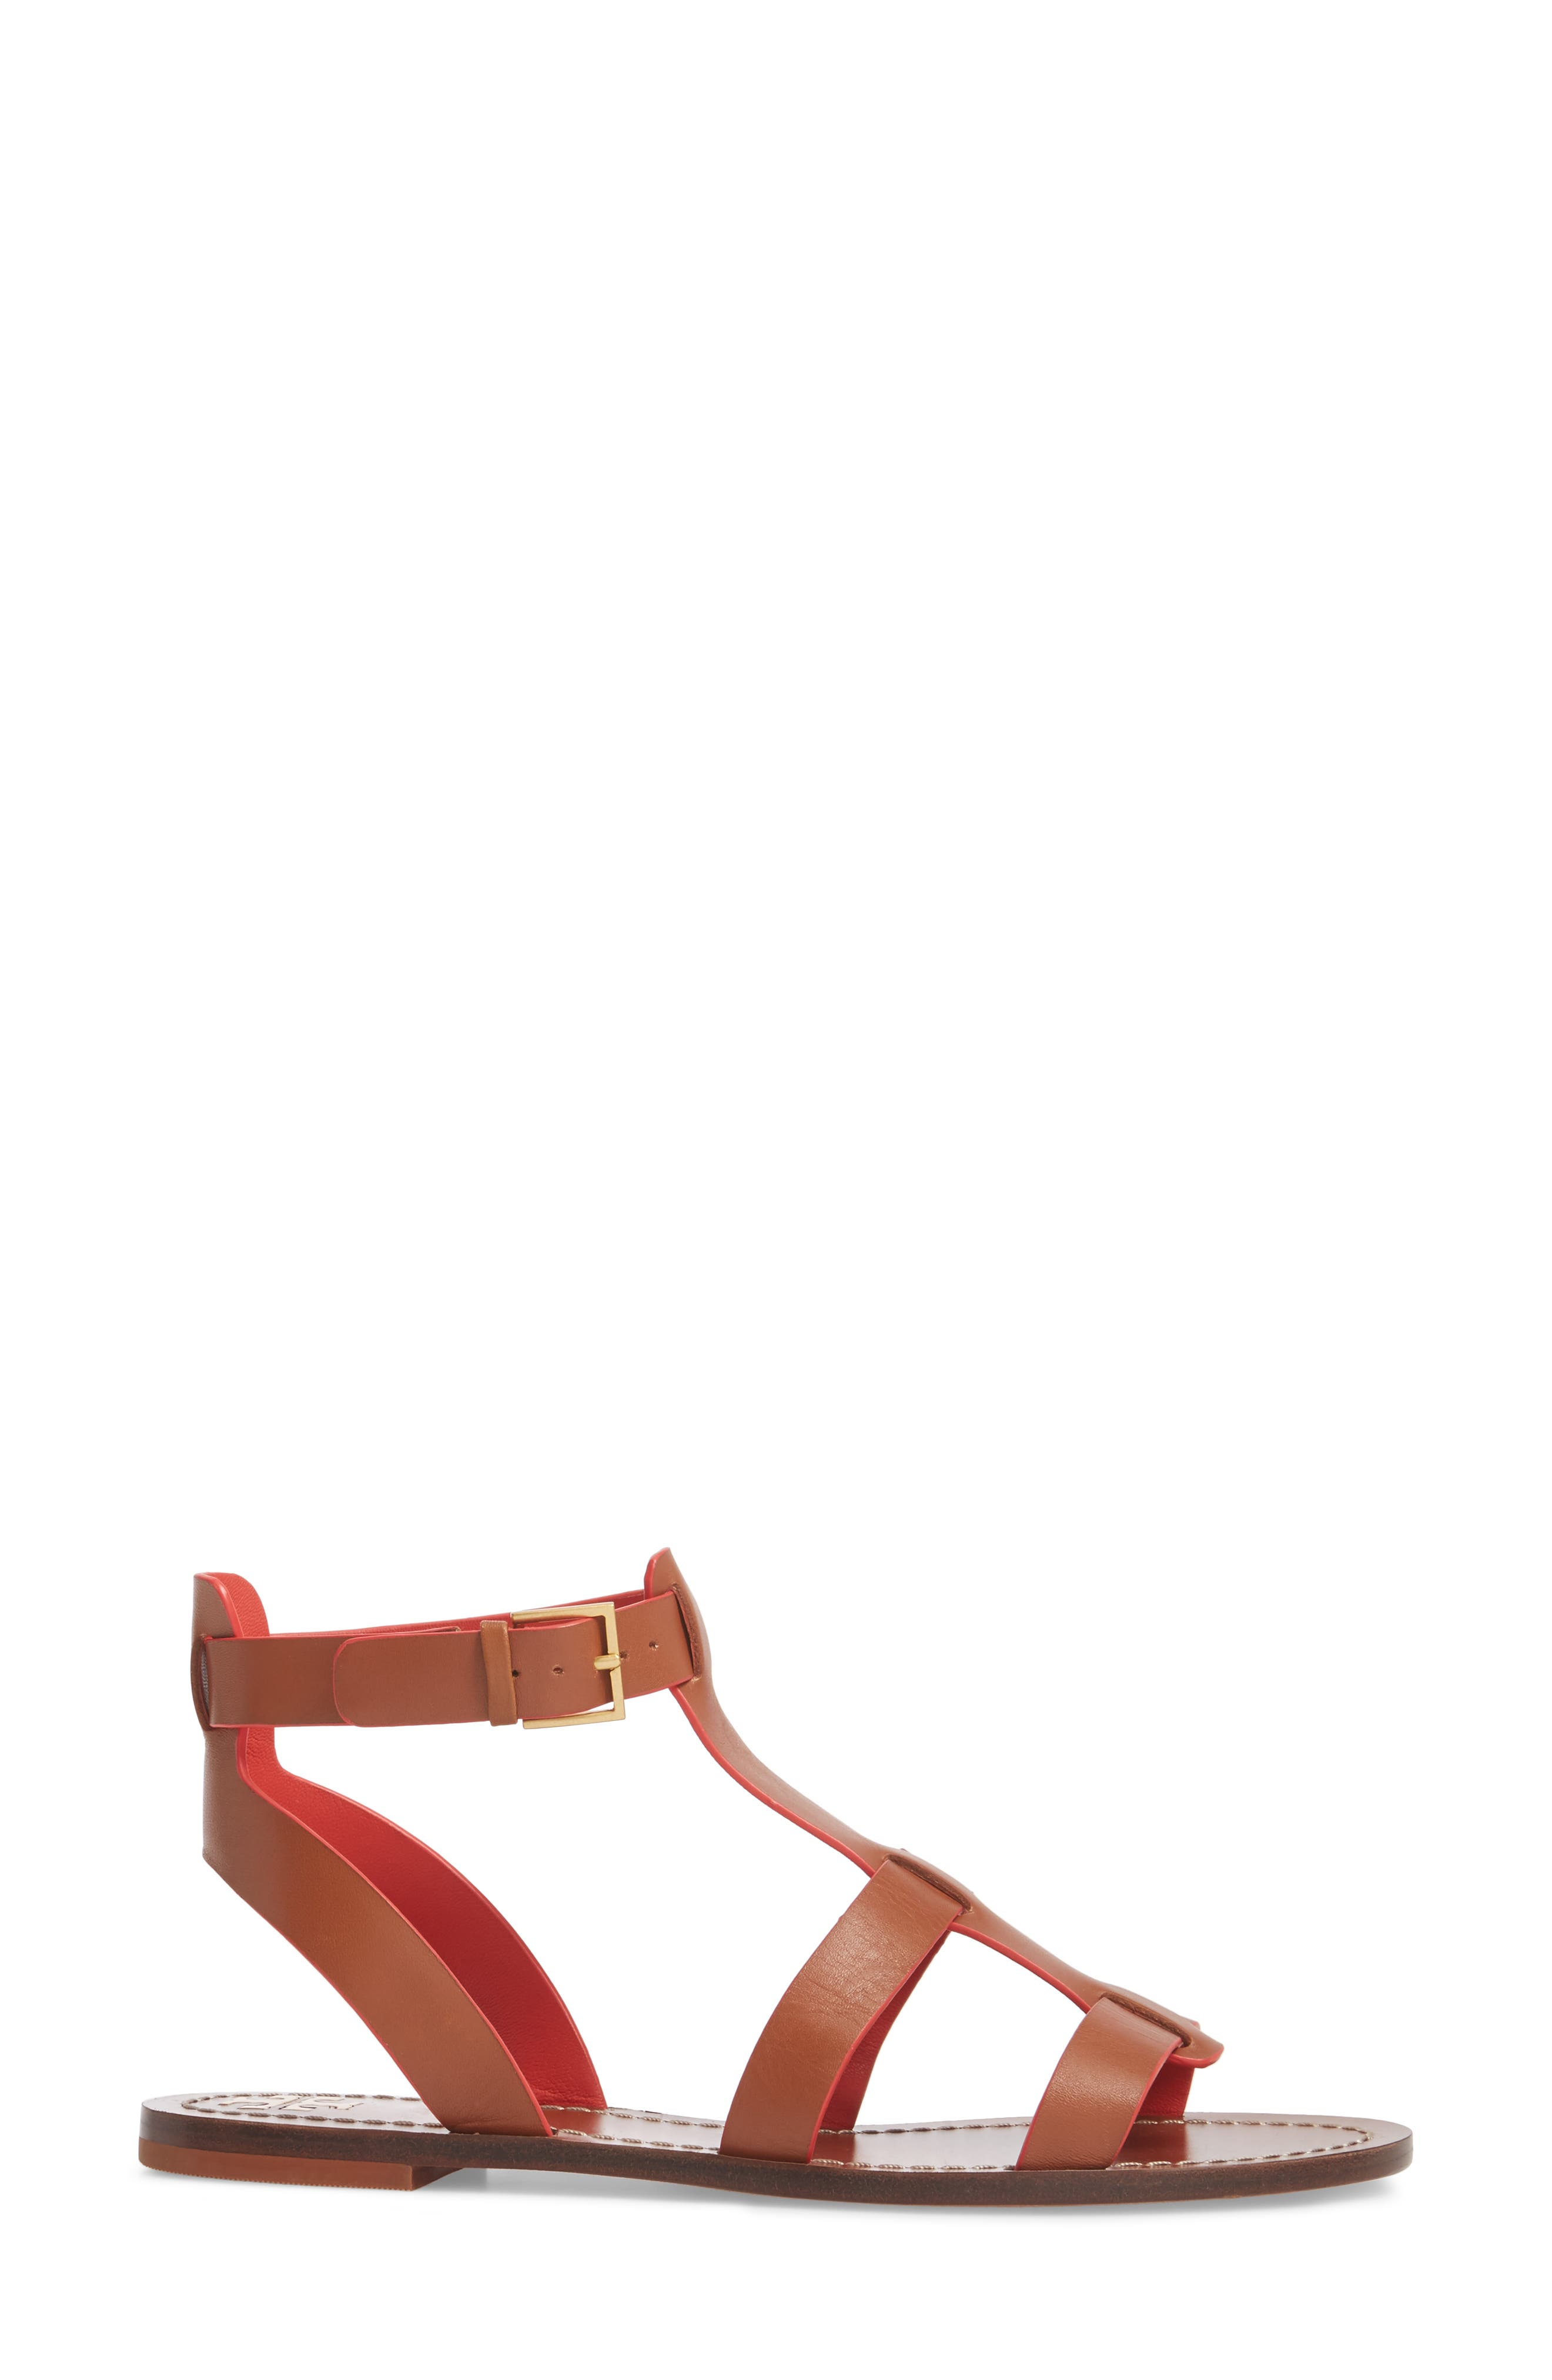 Patos Gladiator Sandal,                             Alternate thumbnail 3, color,                             Perfect Cuoio